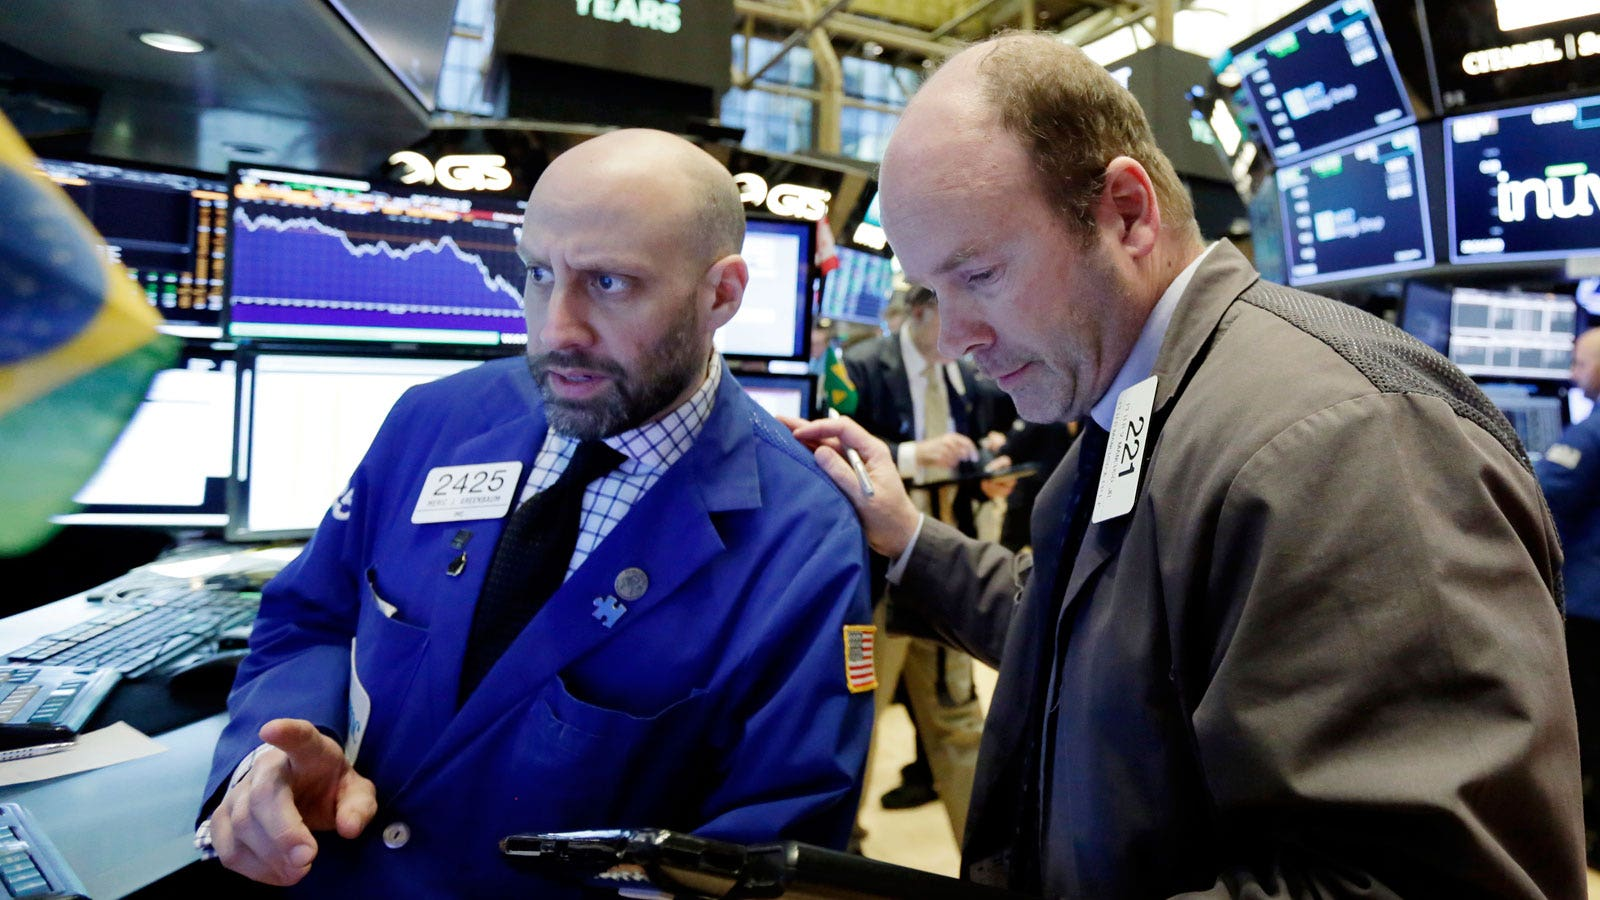 S&P futures and global markets decline - Fox Business